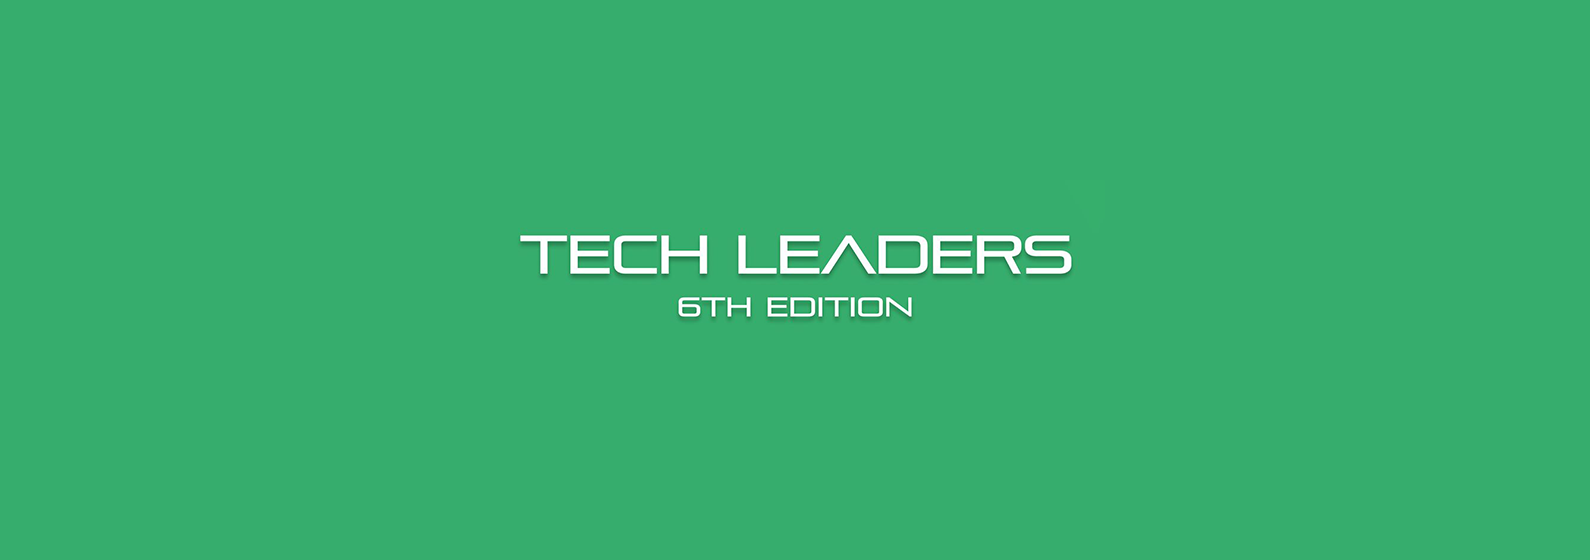 6th Tech Leaders